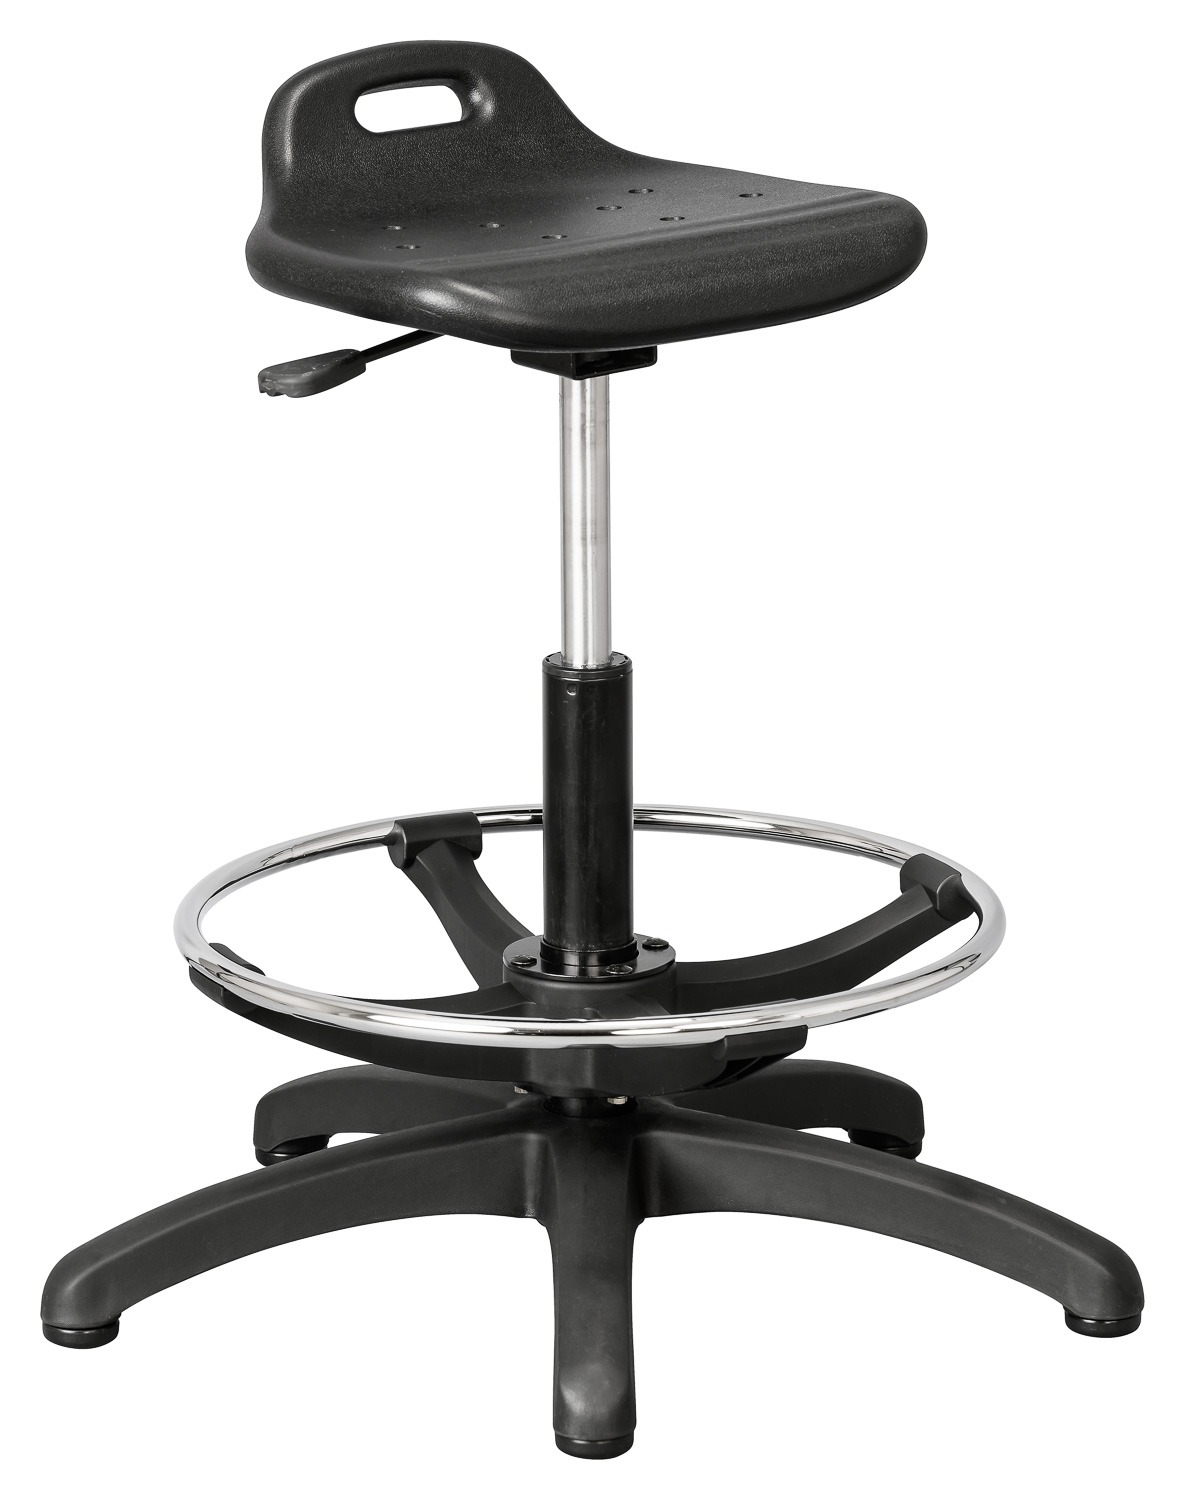 sit-stand industrial chair used in South Africa enhances ergonomics